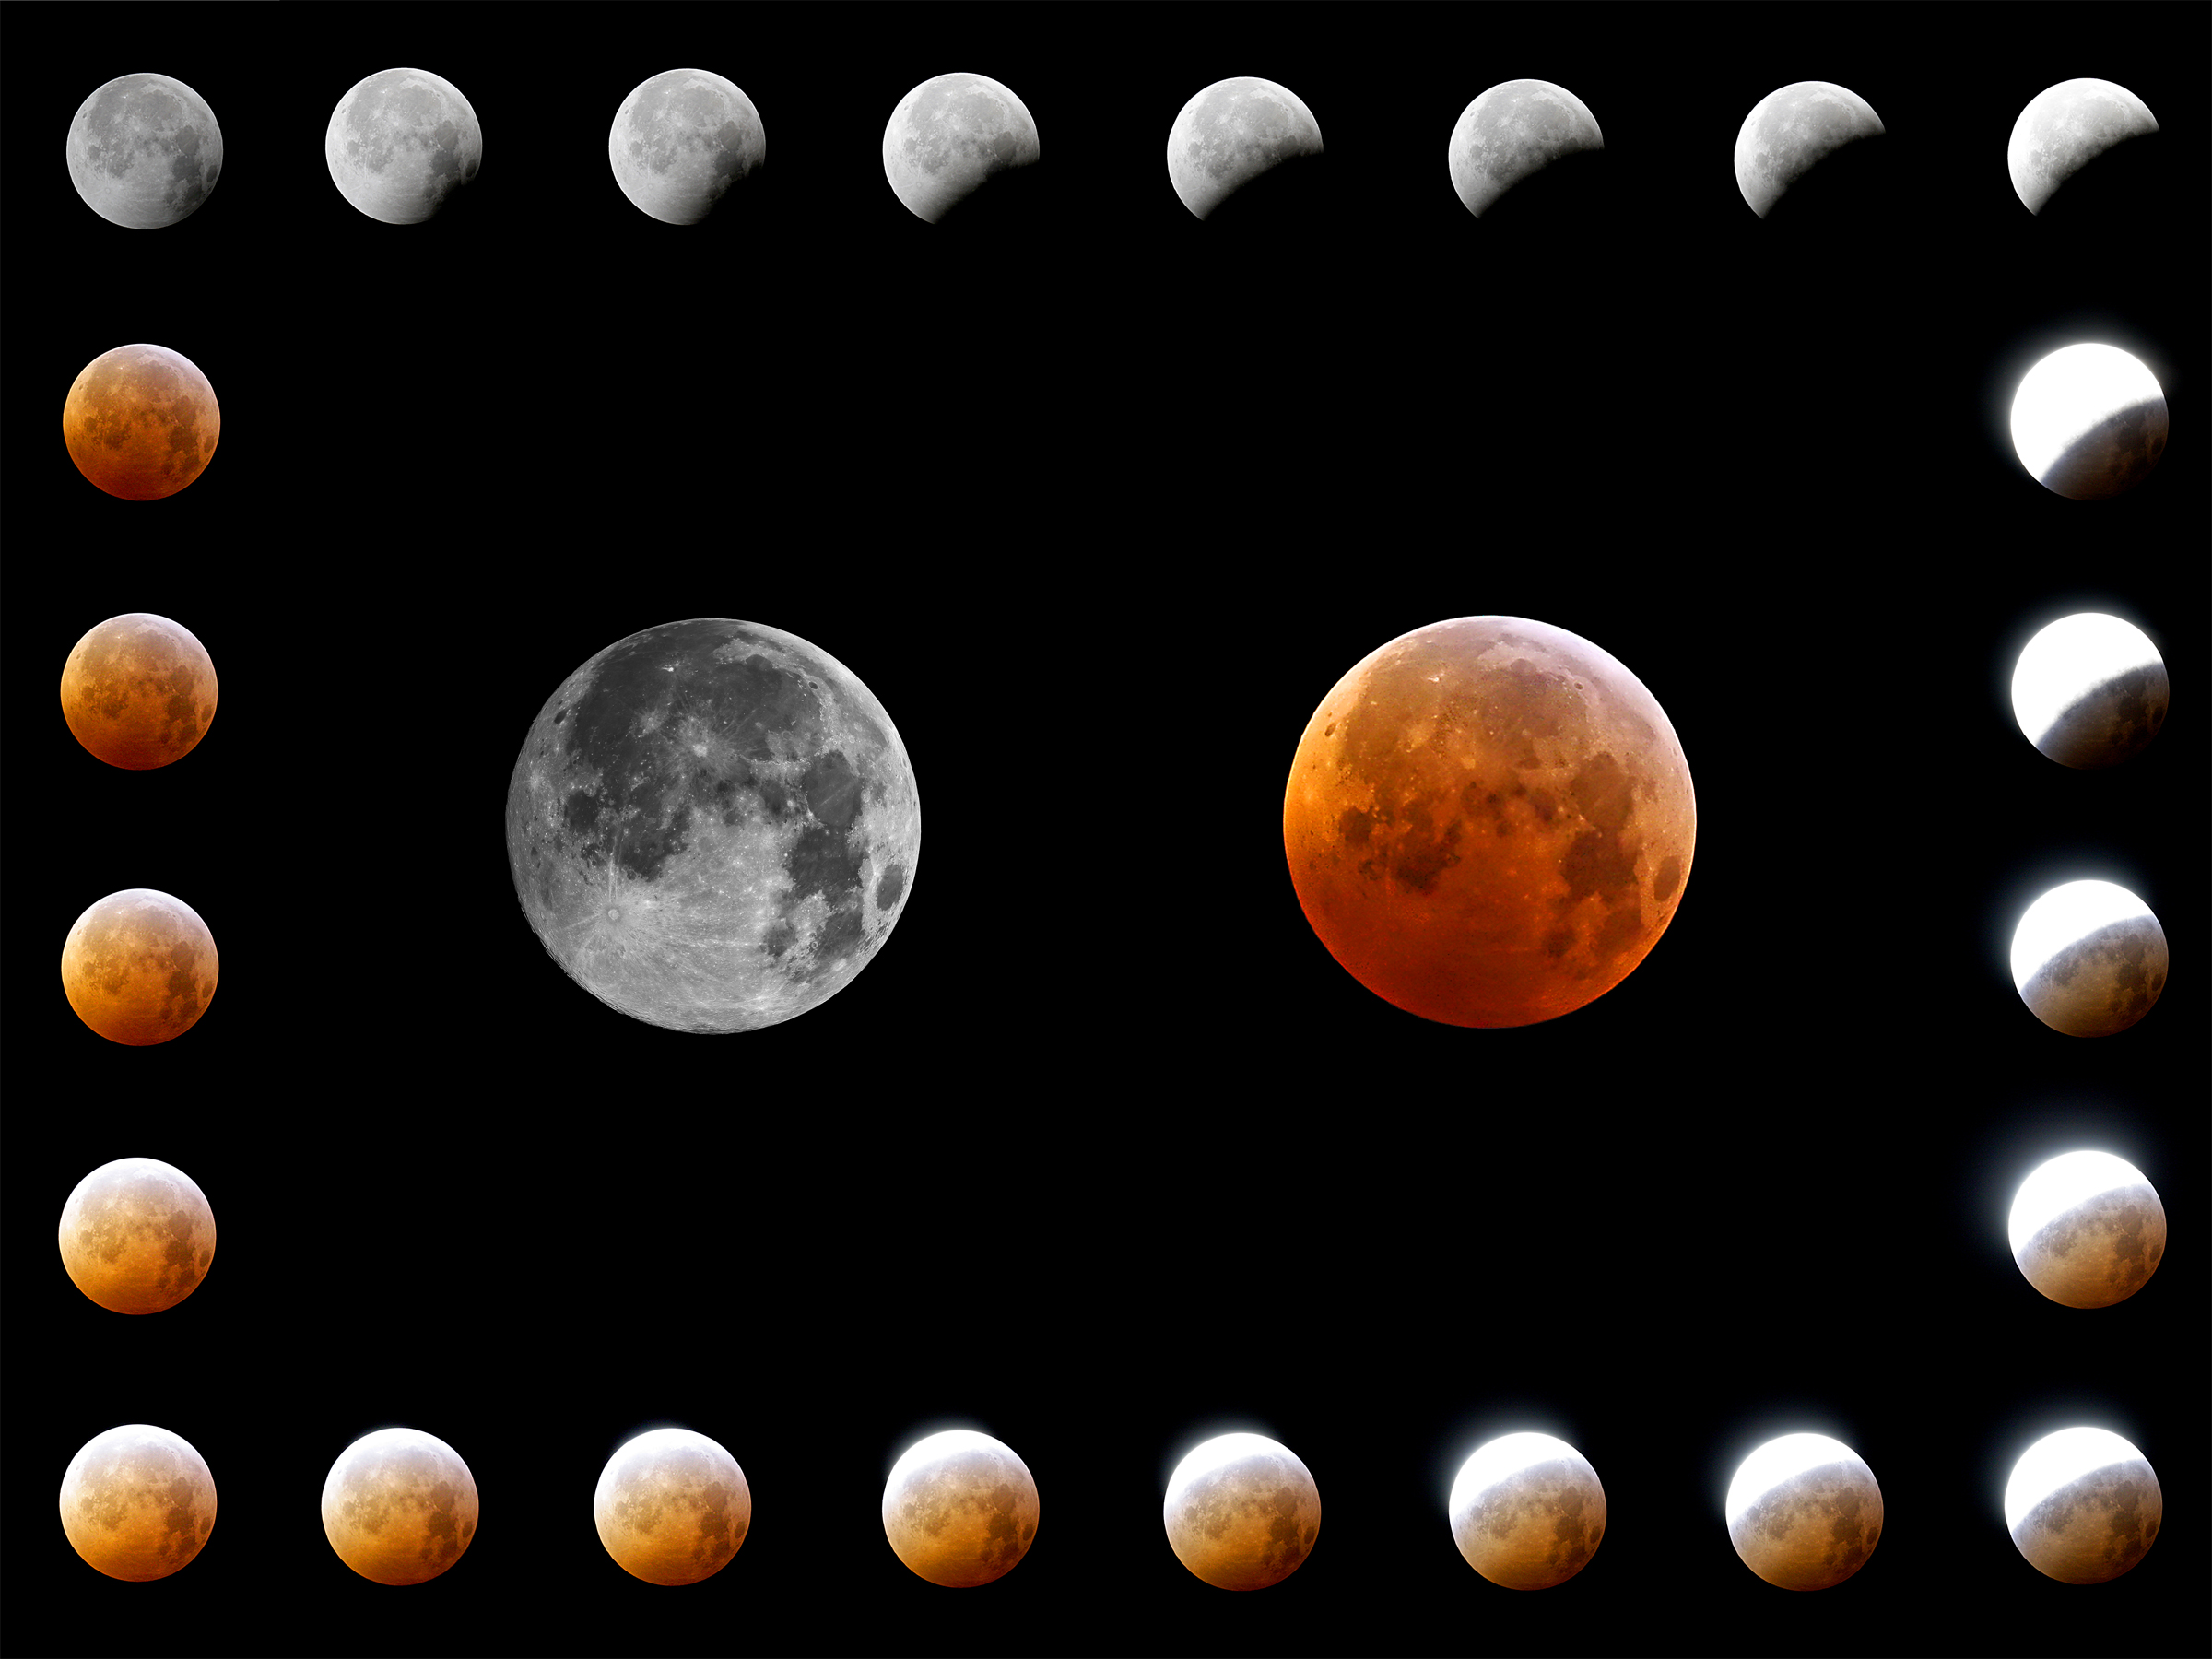 December 2010 LUNAR ECLIPSE - Wikipedia, the free encyclopedia